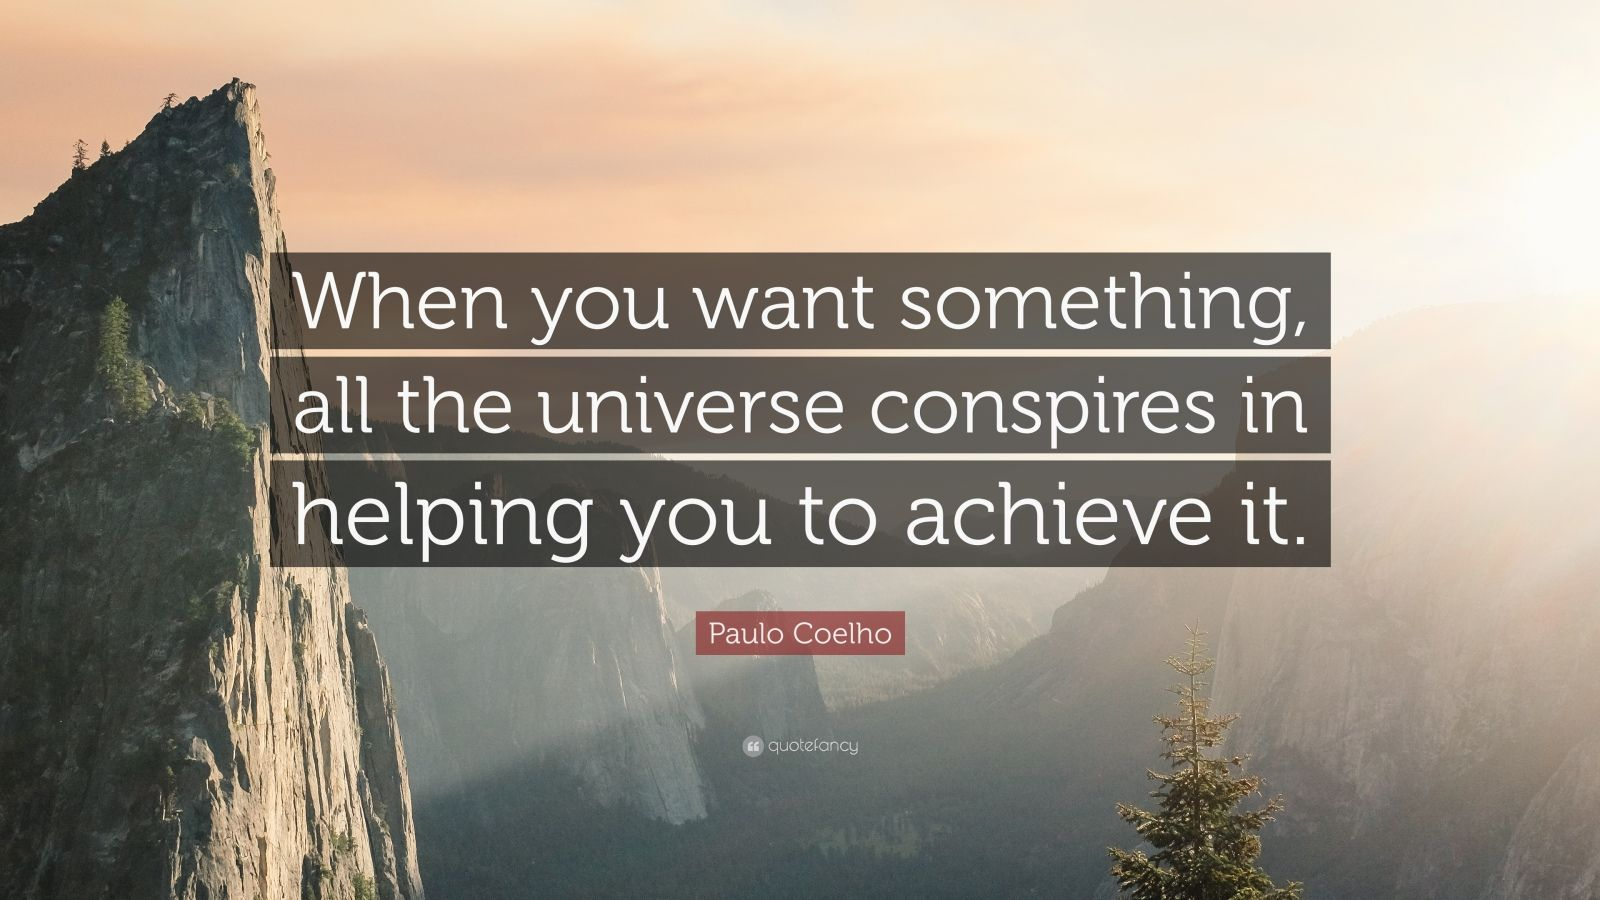 Inspirational Quotes About Life Wallpaper Paulo Coelho Quote When You Want Something All The